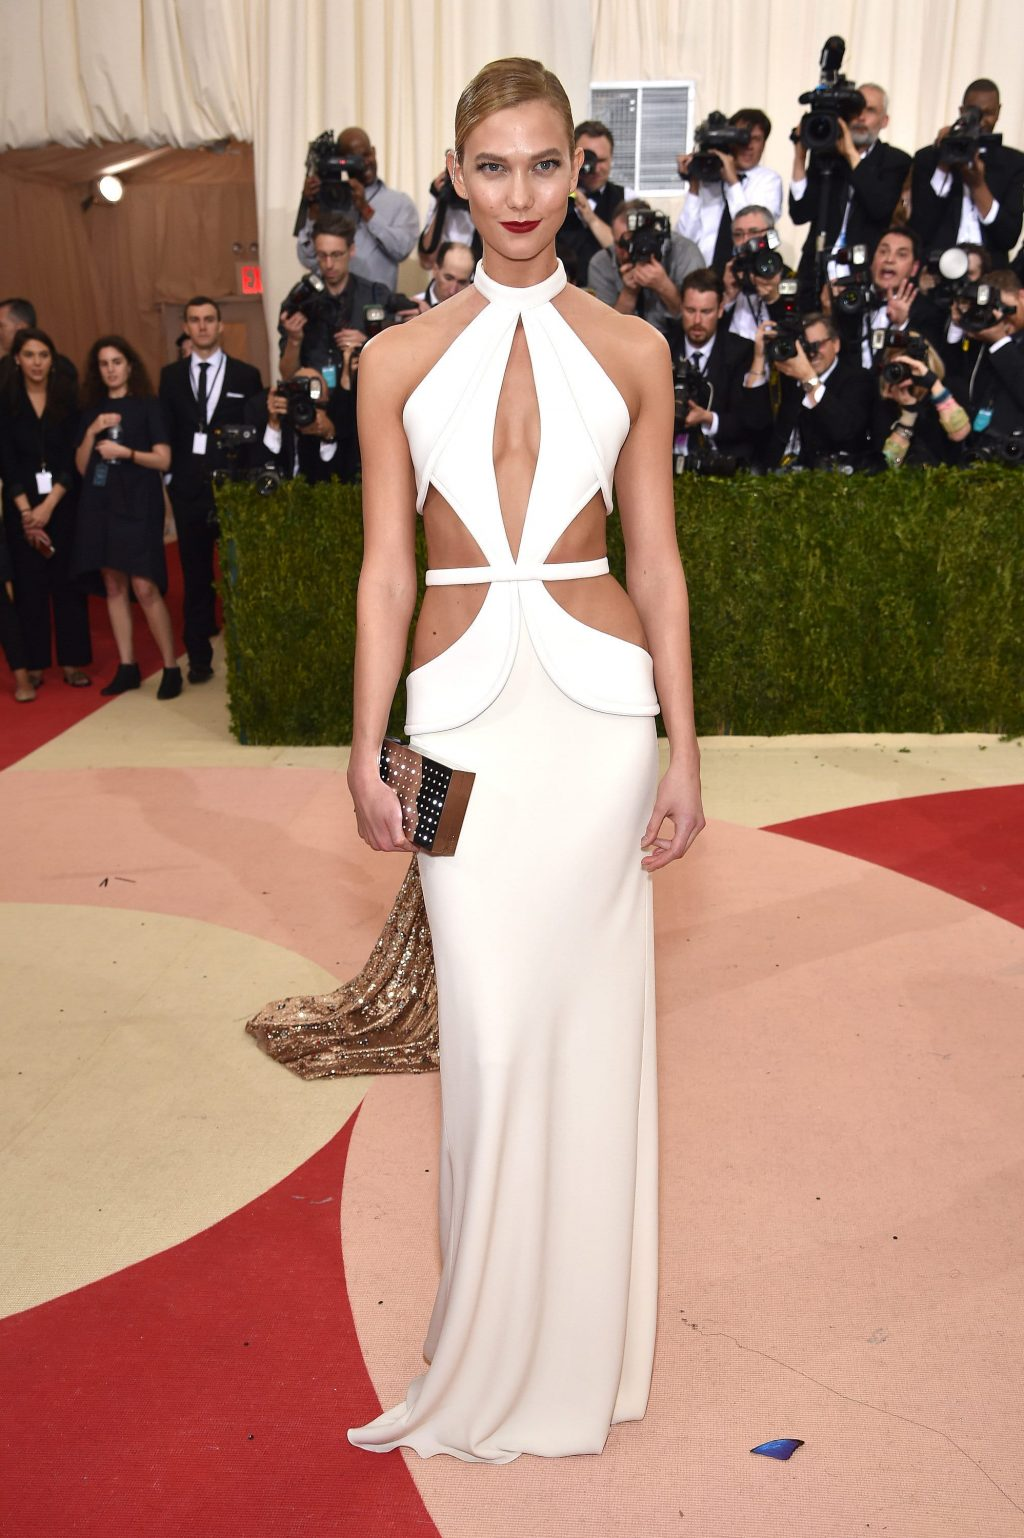 Karlie Kloss MET Gala Getty Images